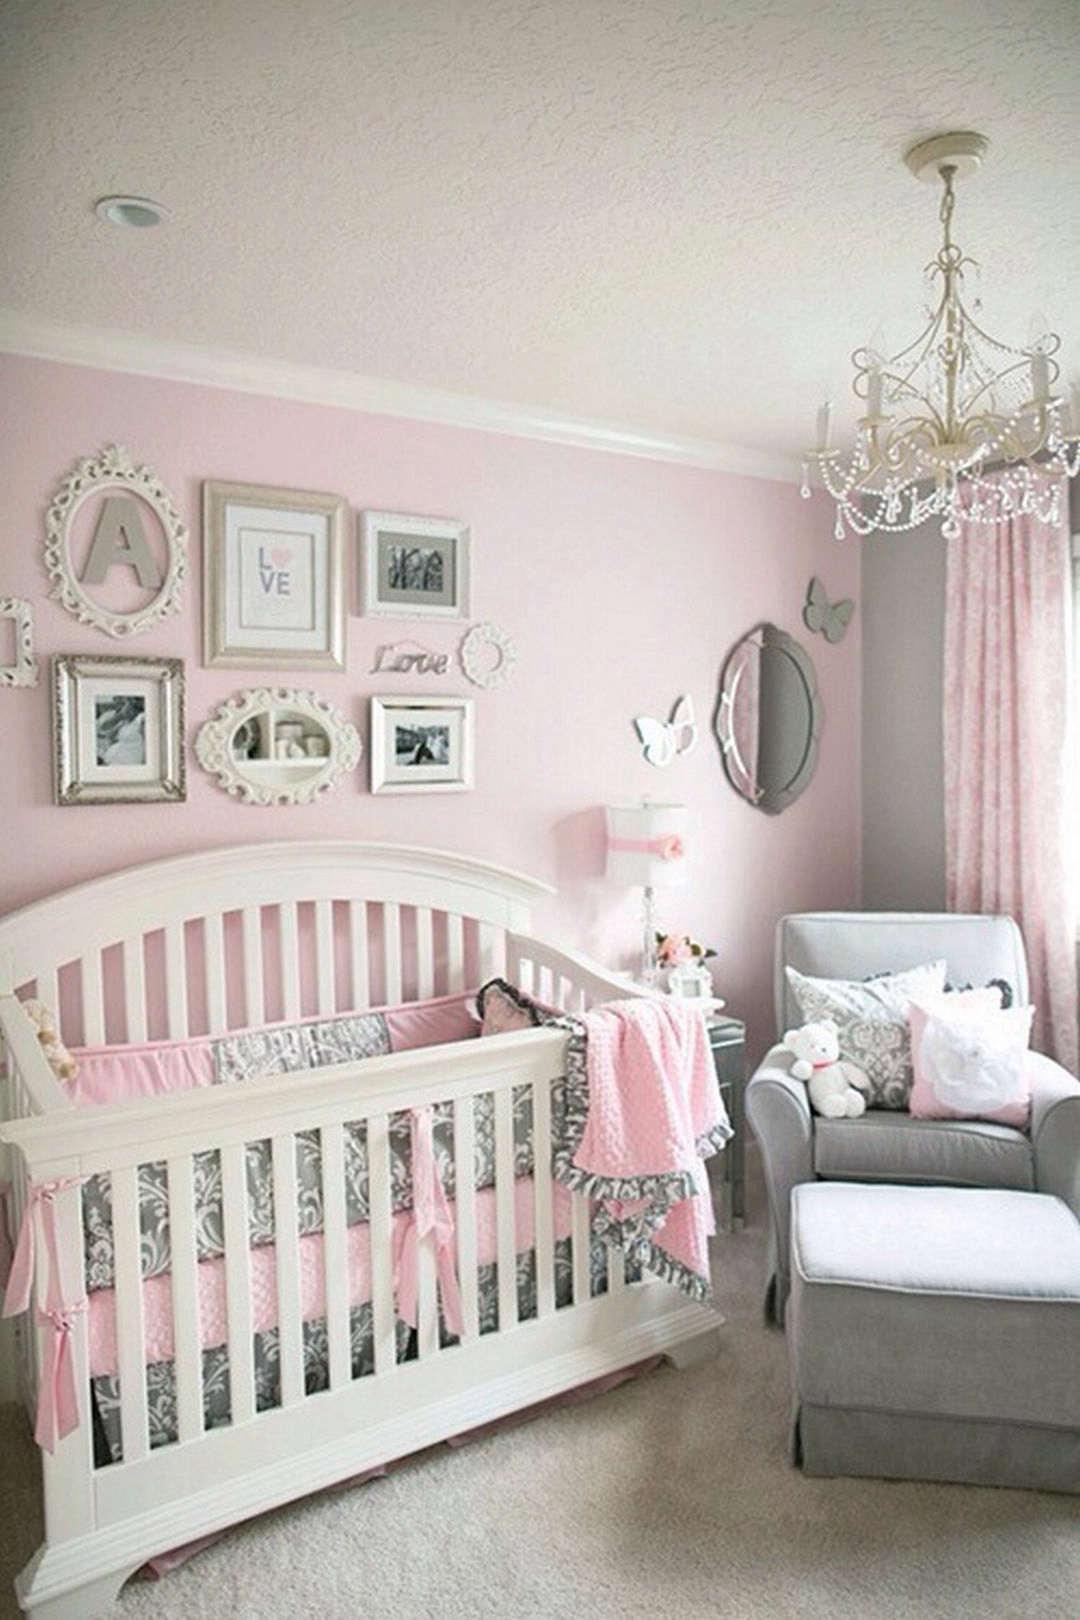 Baby Bedroom Ideas Girl Tuck this idea away Nursery Ideas Girl Grey, Nursery Gray, Baby Gurl Nursery ,